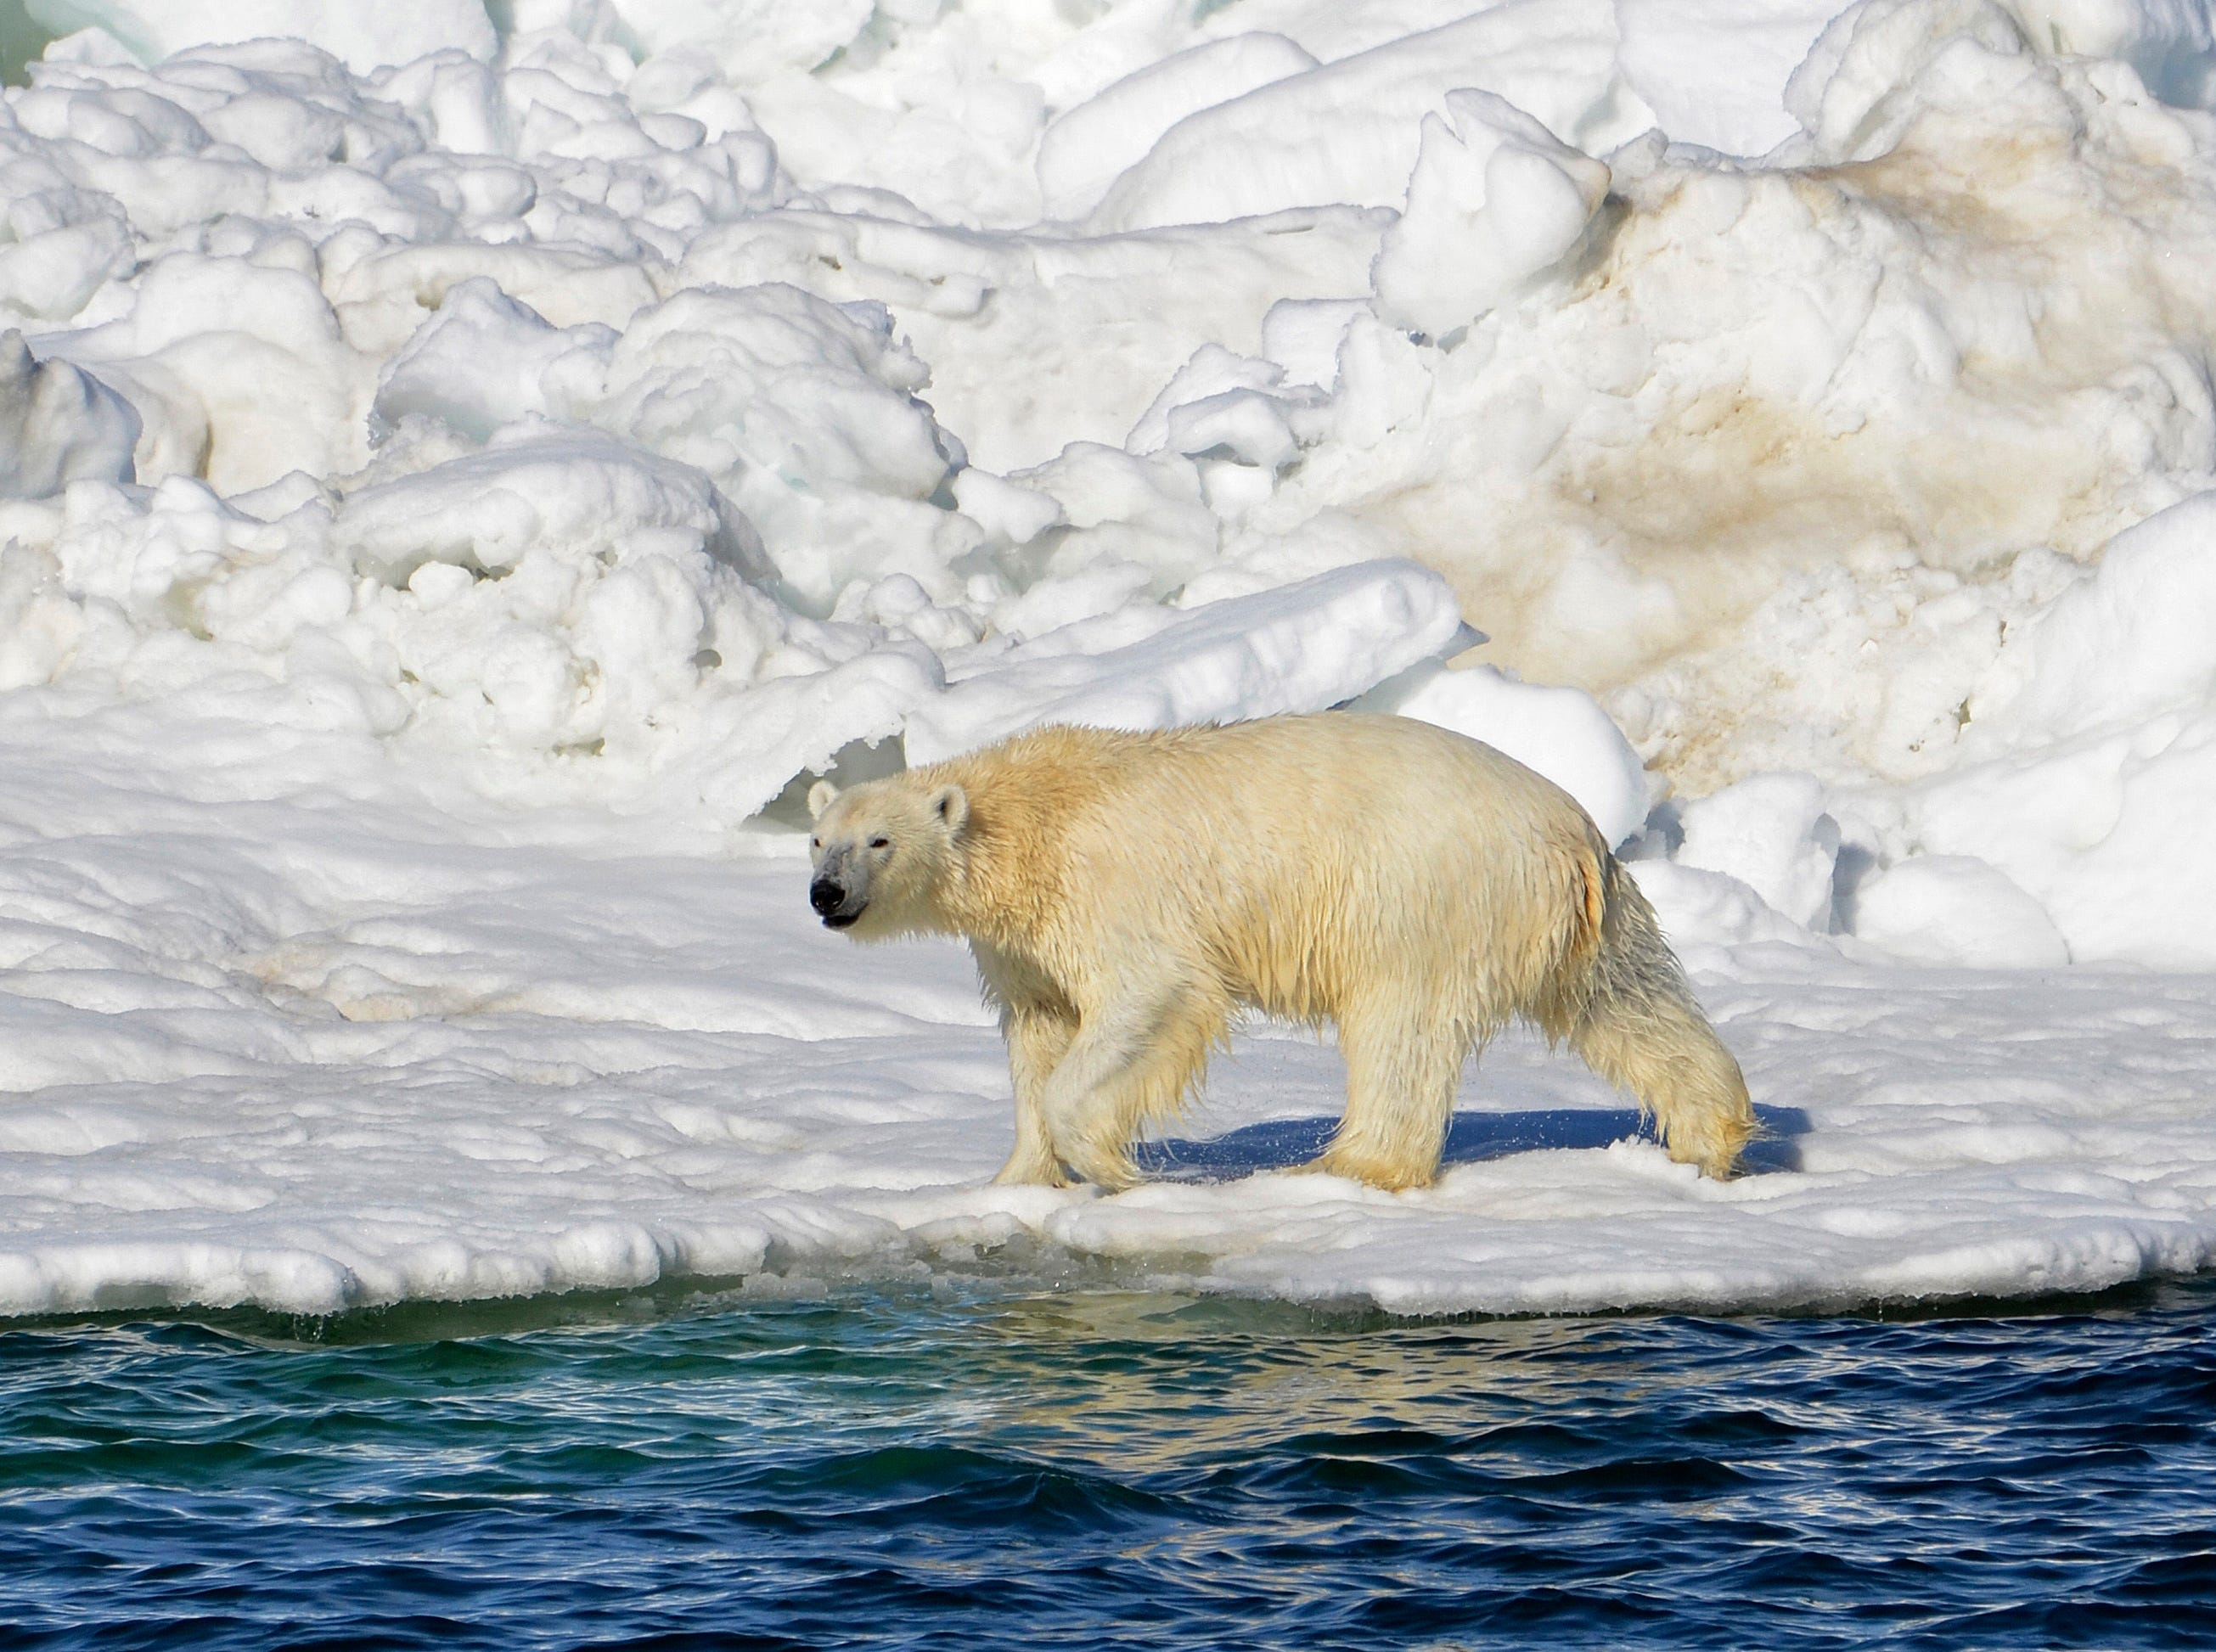 A polar bear dries off after taking a swim in the Chukchi Sea in Alaska, June 15, 2014.